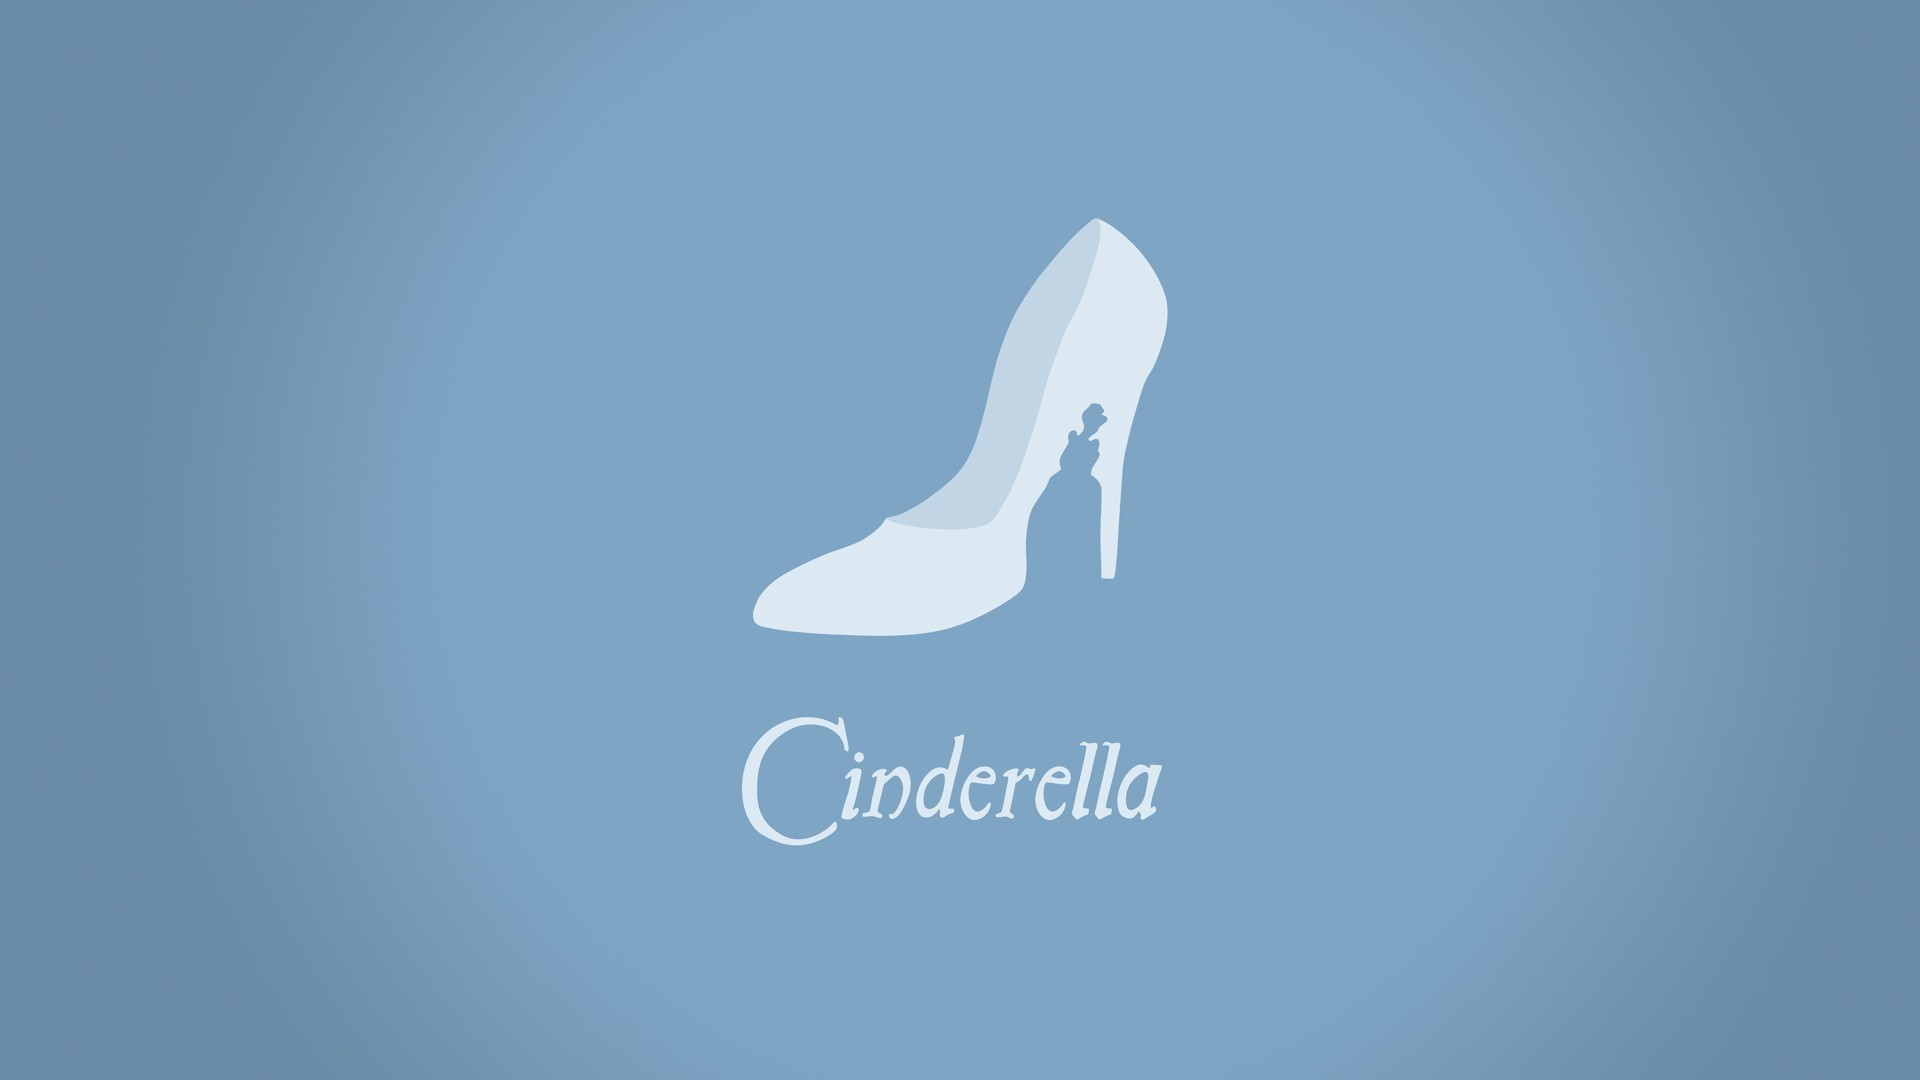 1920x1080 Minimalistic Cinderella hd wallpaper background